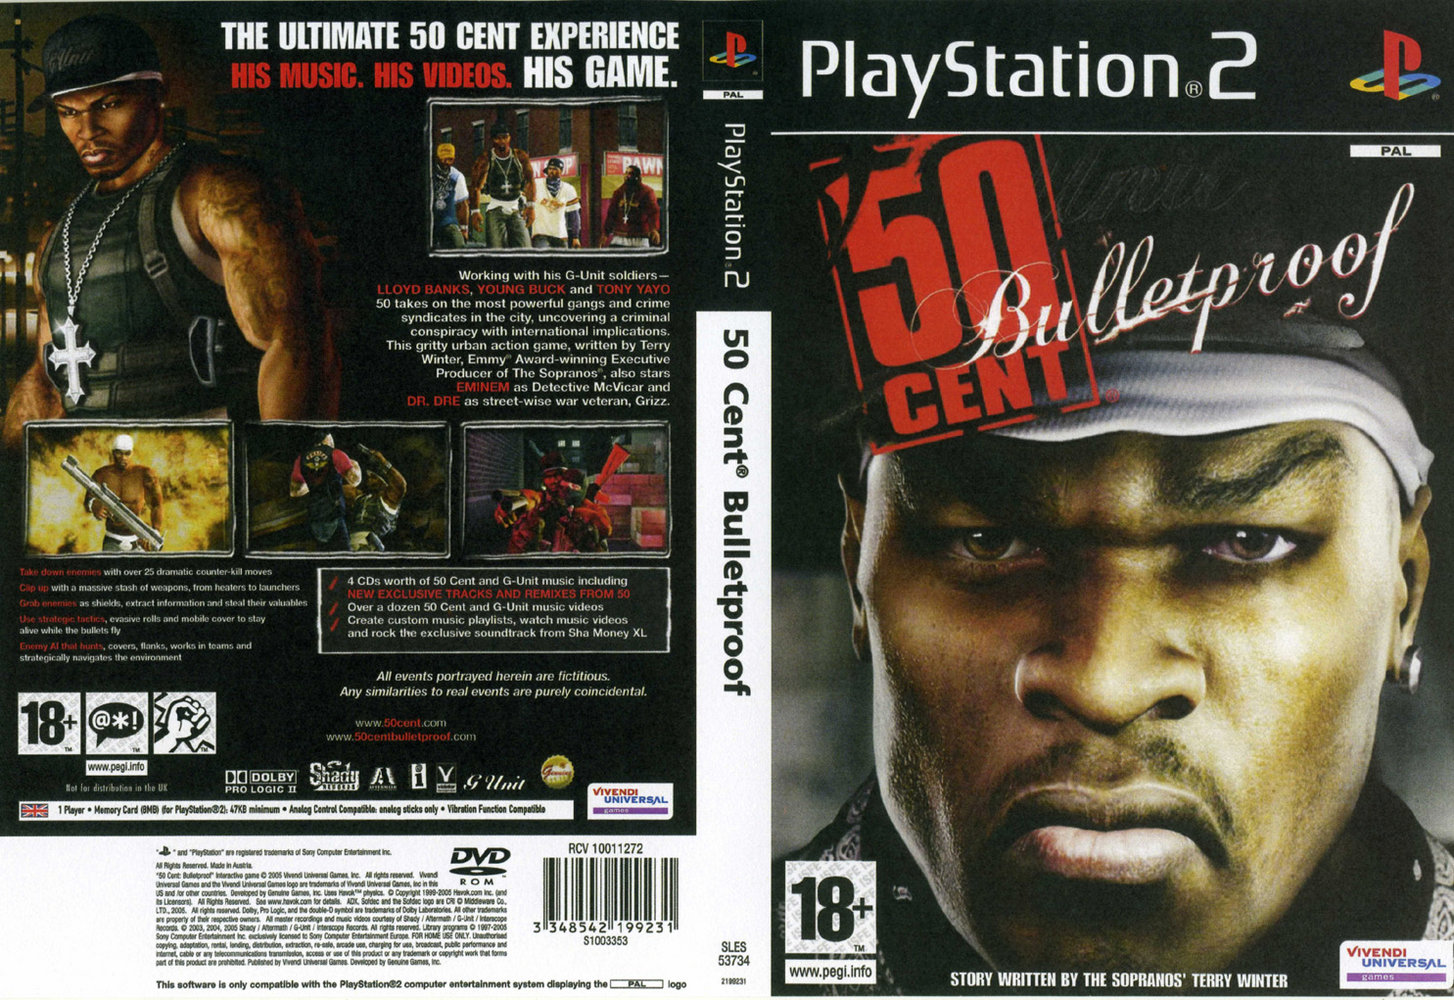 Ps2 game bokep sex movie